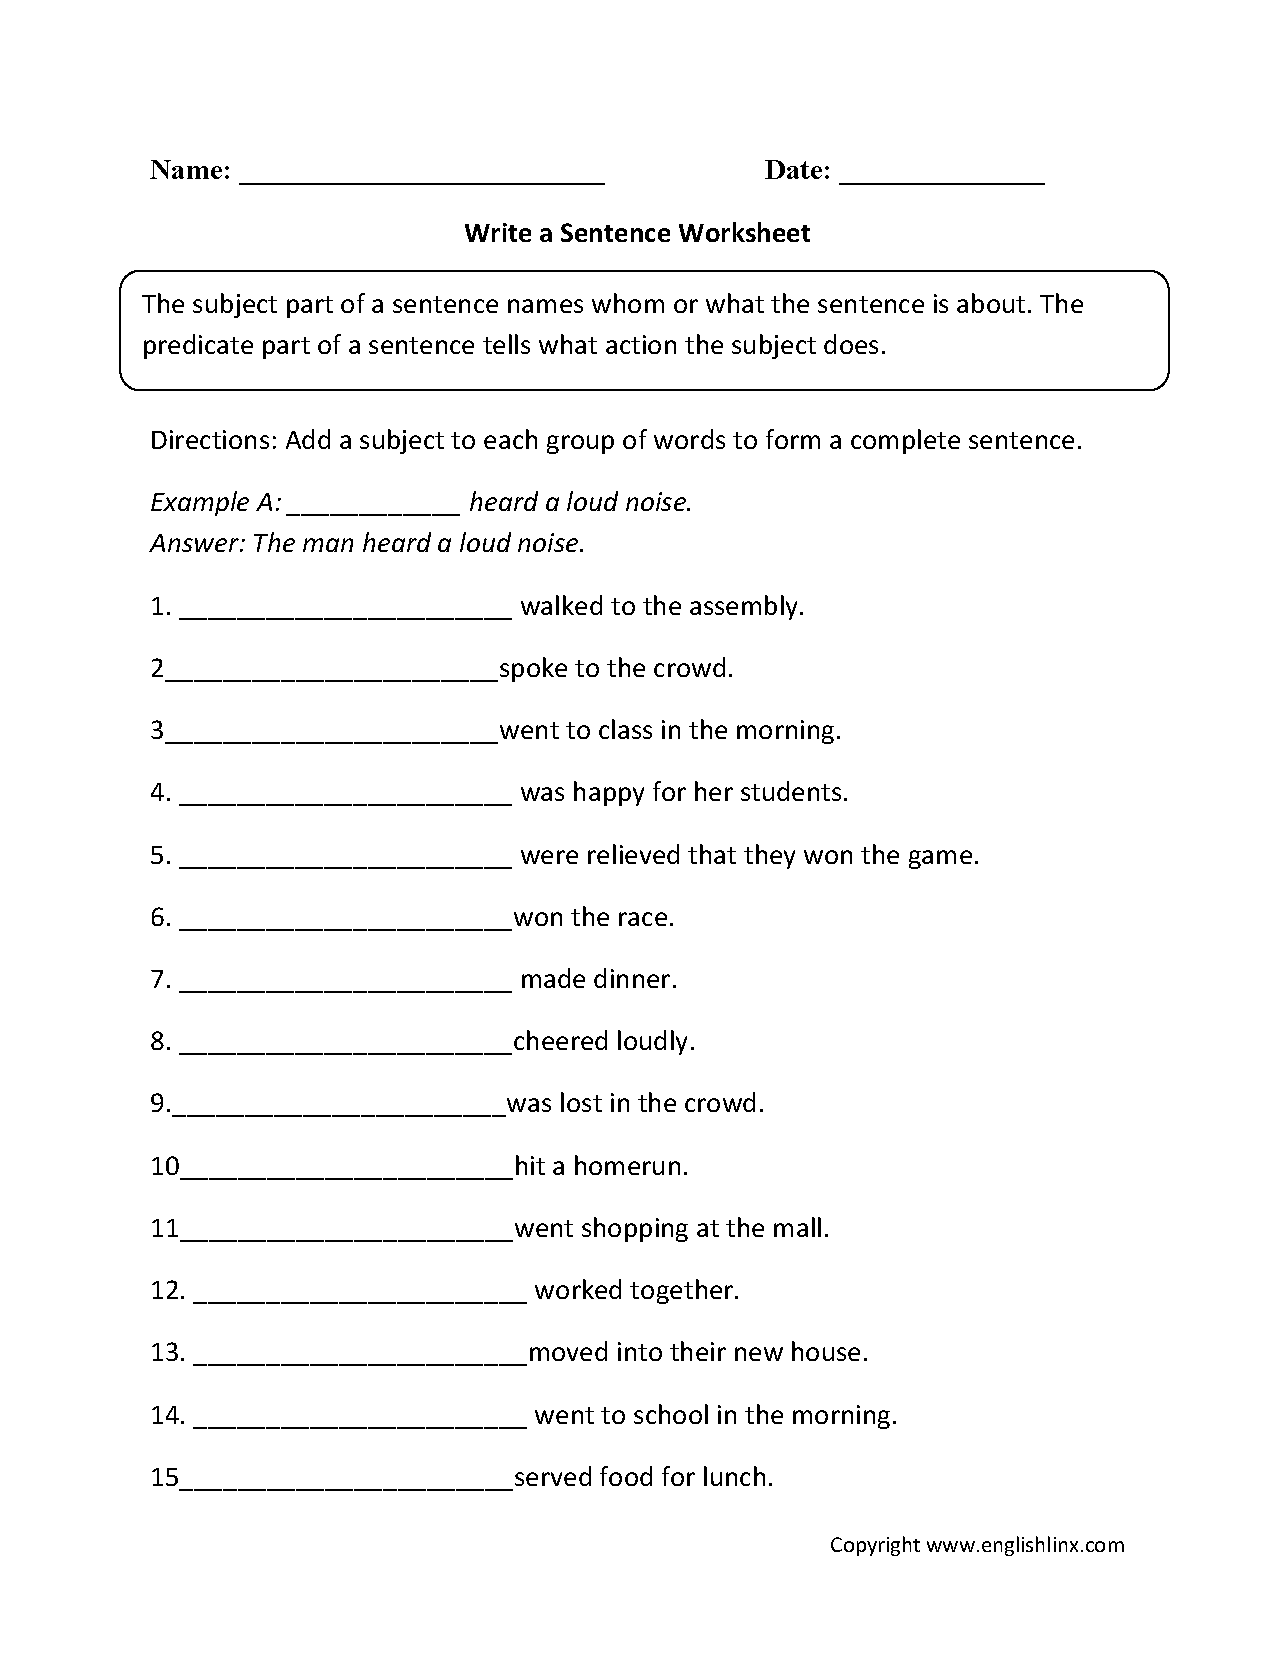 worksheet Sentence Building Worksheets sentence structure worksheets building write a worksheet